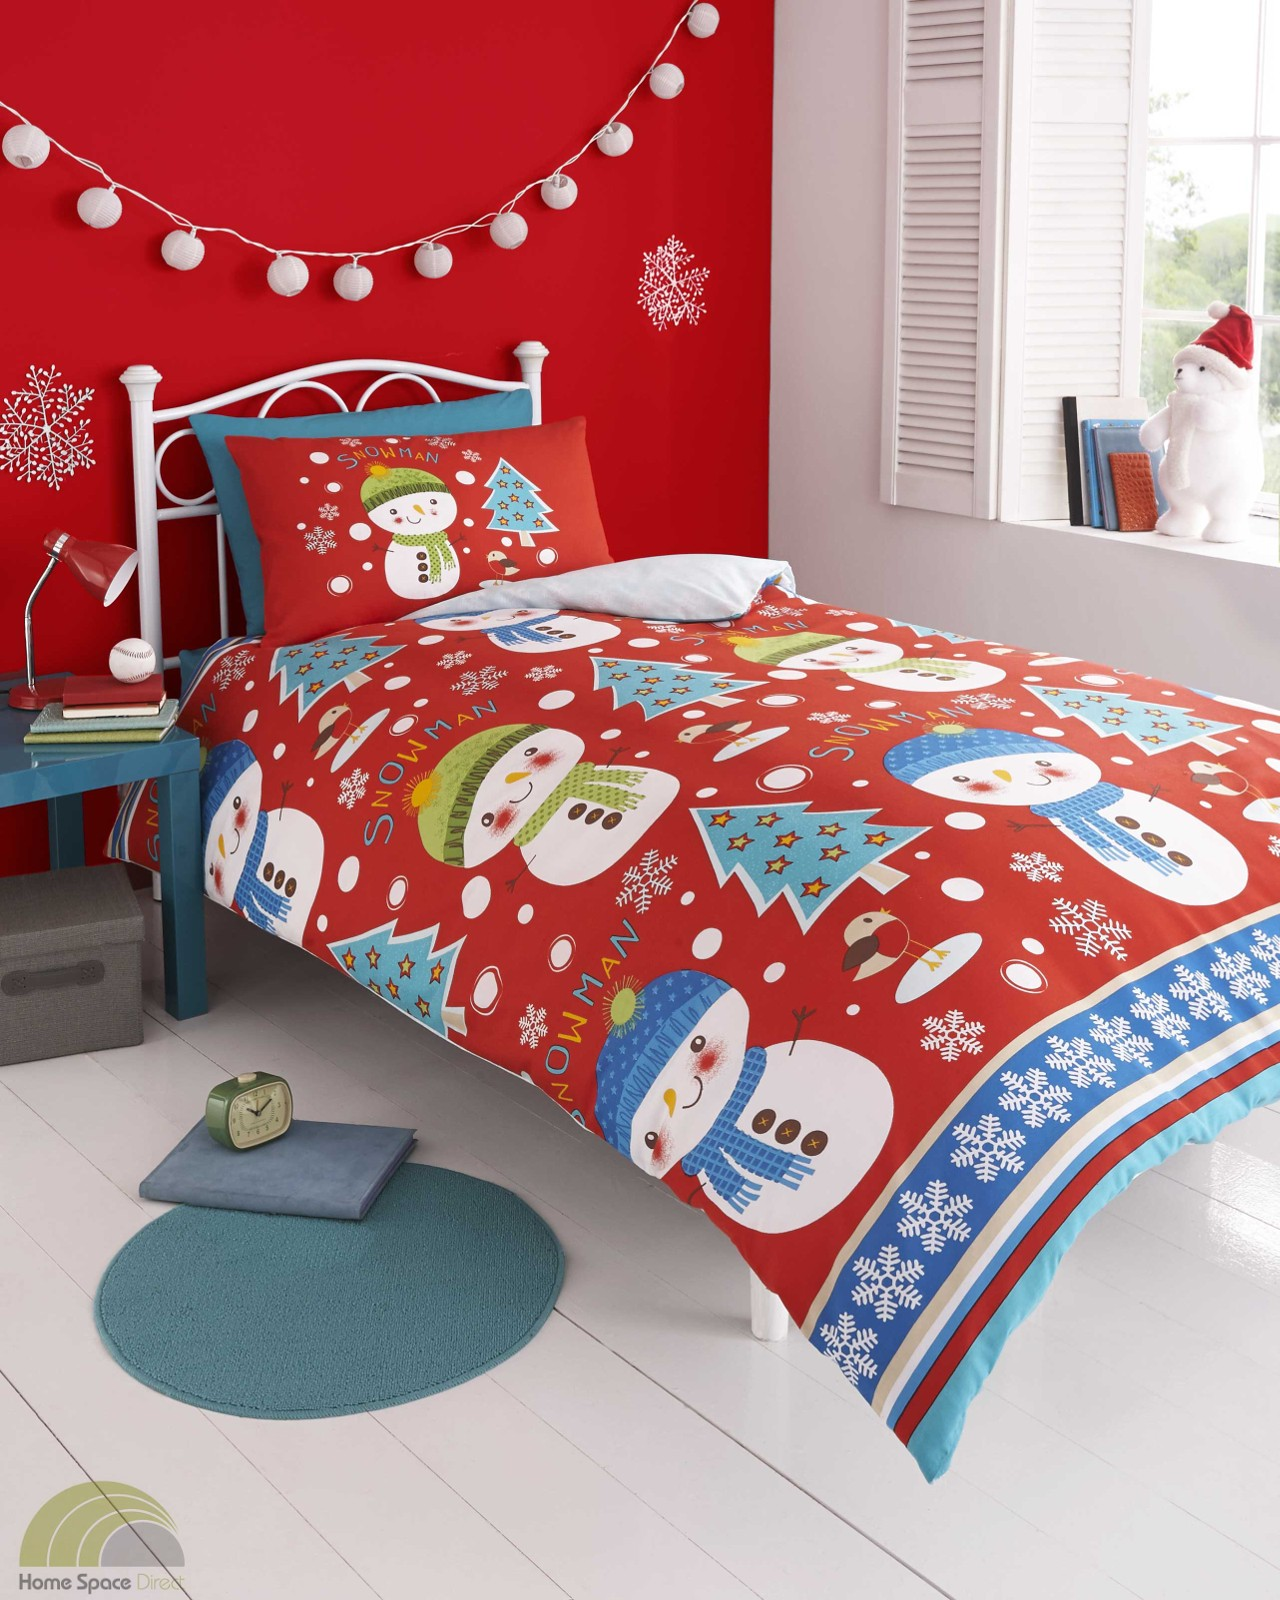 Sleep safe and sound in Pottery Barn Kids' Christmas bedding for kids and babies. Bright colors and seasonal characters make these bed sets holiday staples.